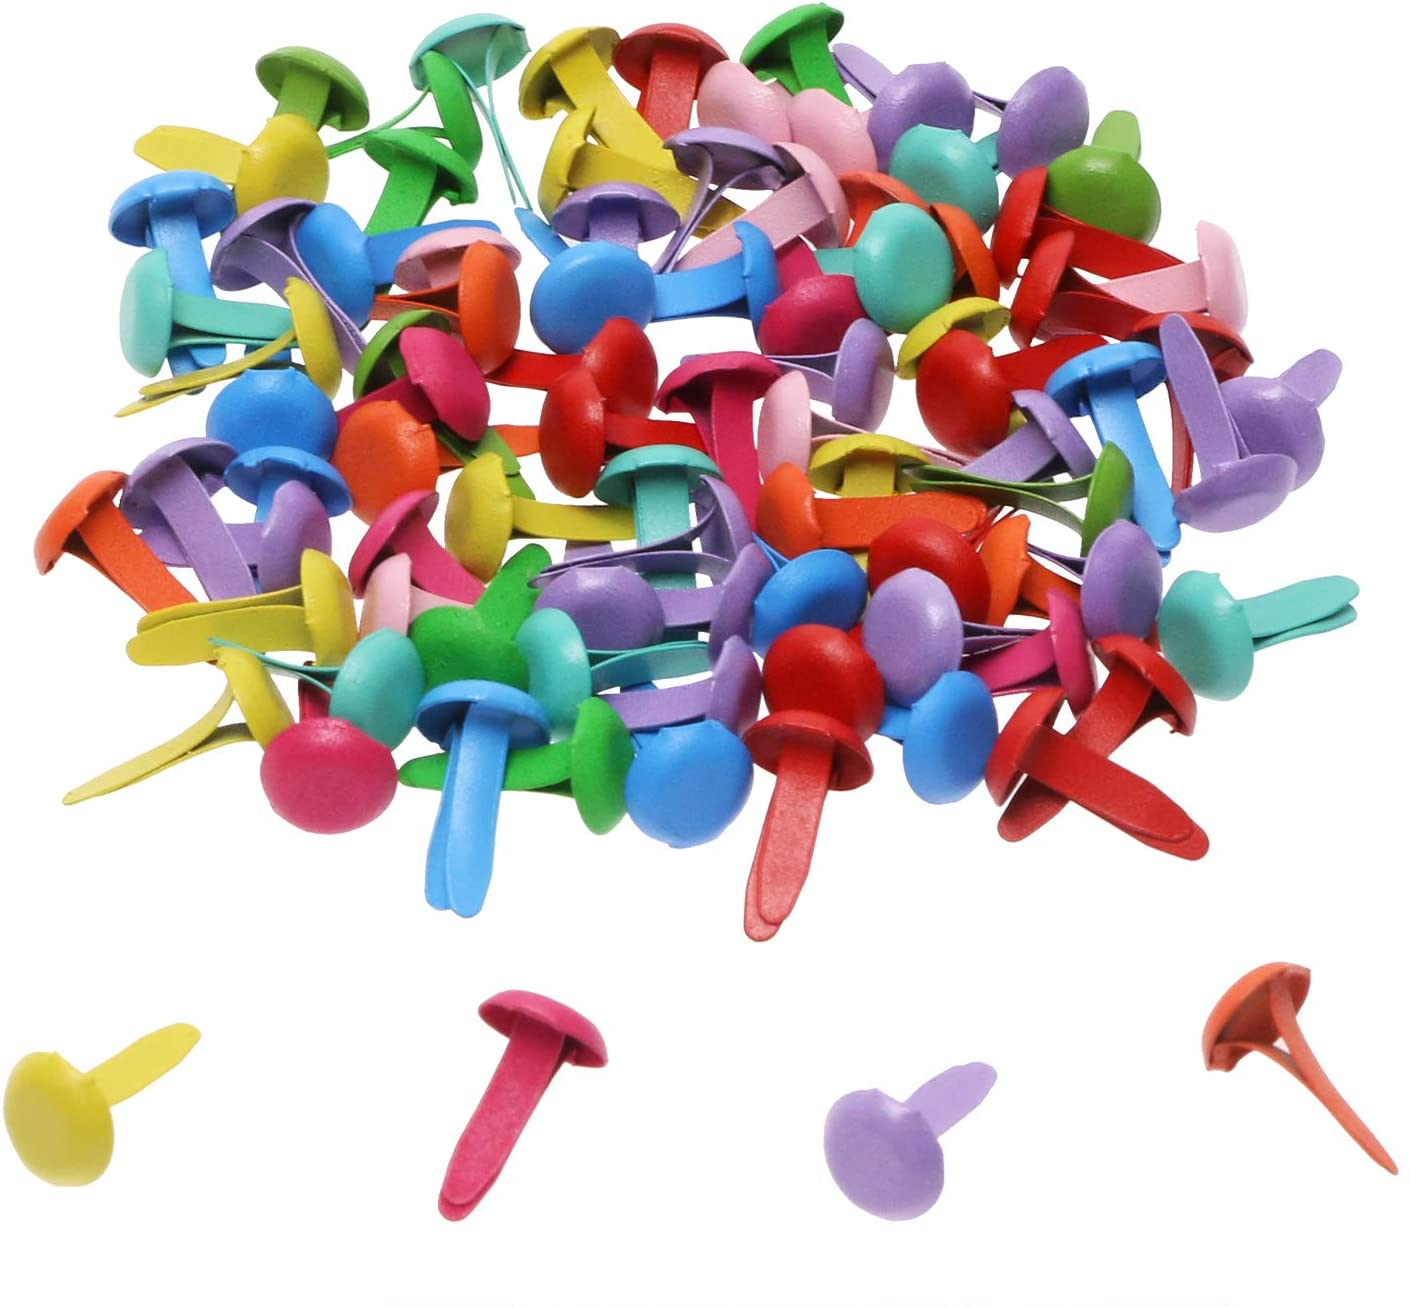 Penta Angel Mini Brads 100Pcs excellence Paper Fasteners Spasm price Ro Assorted Colors